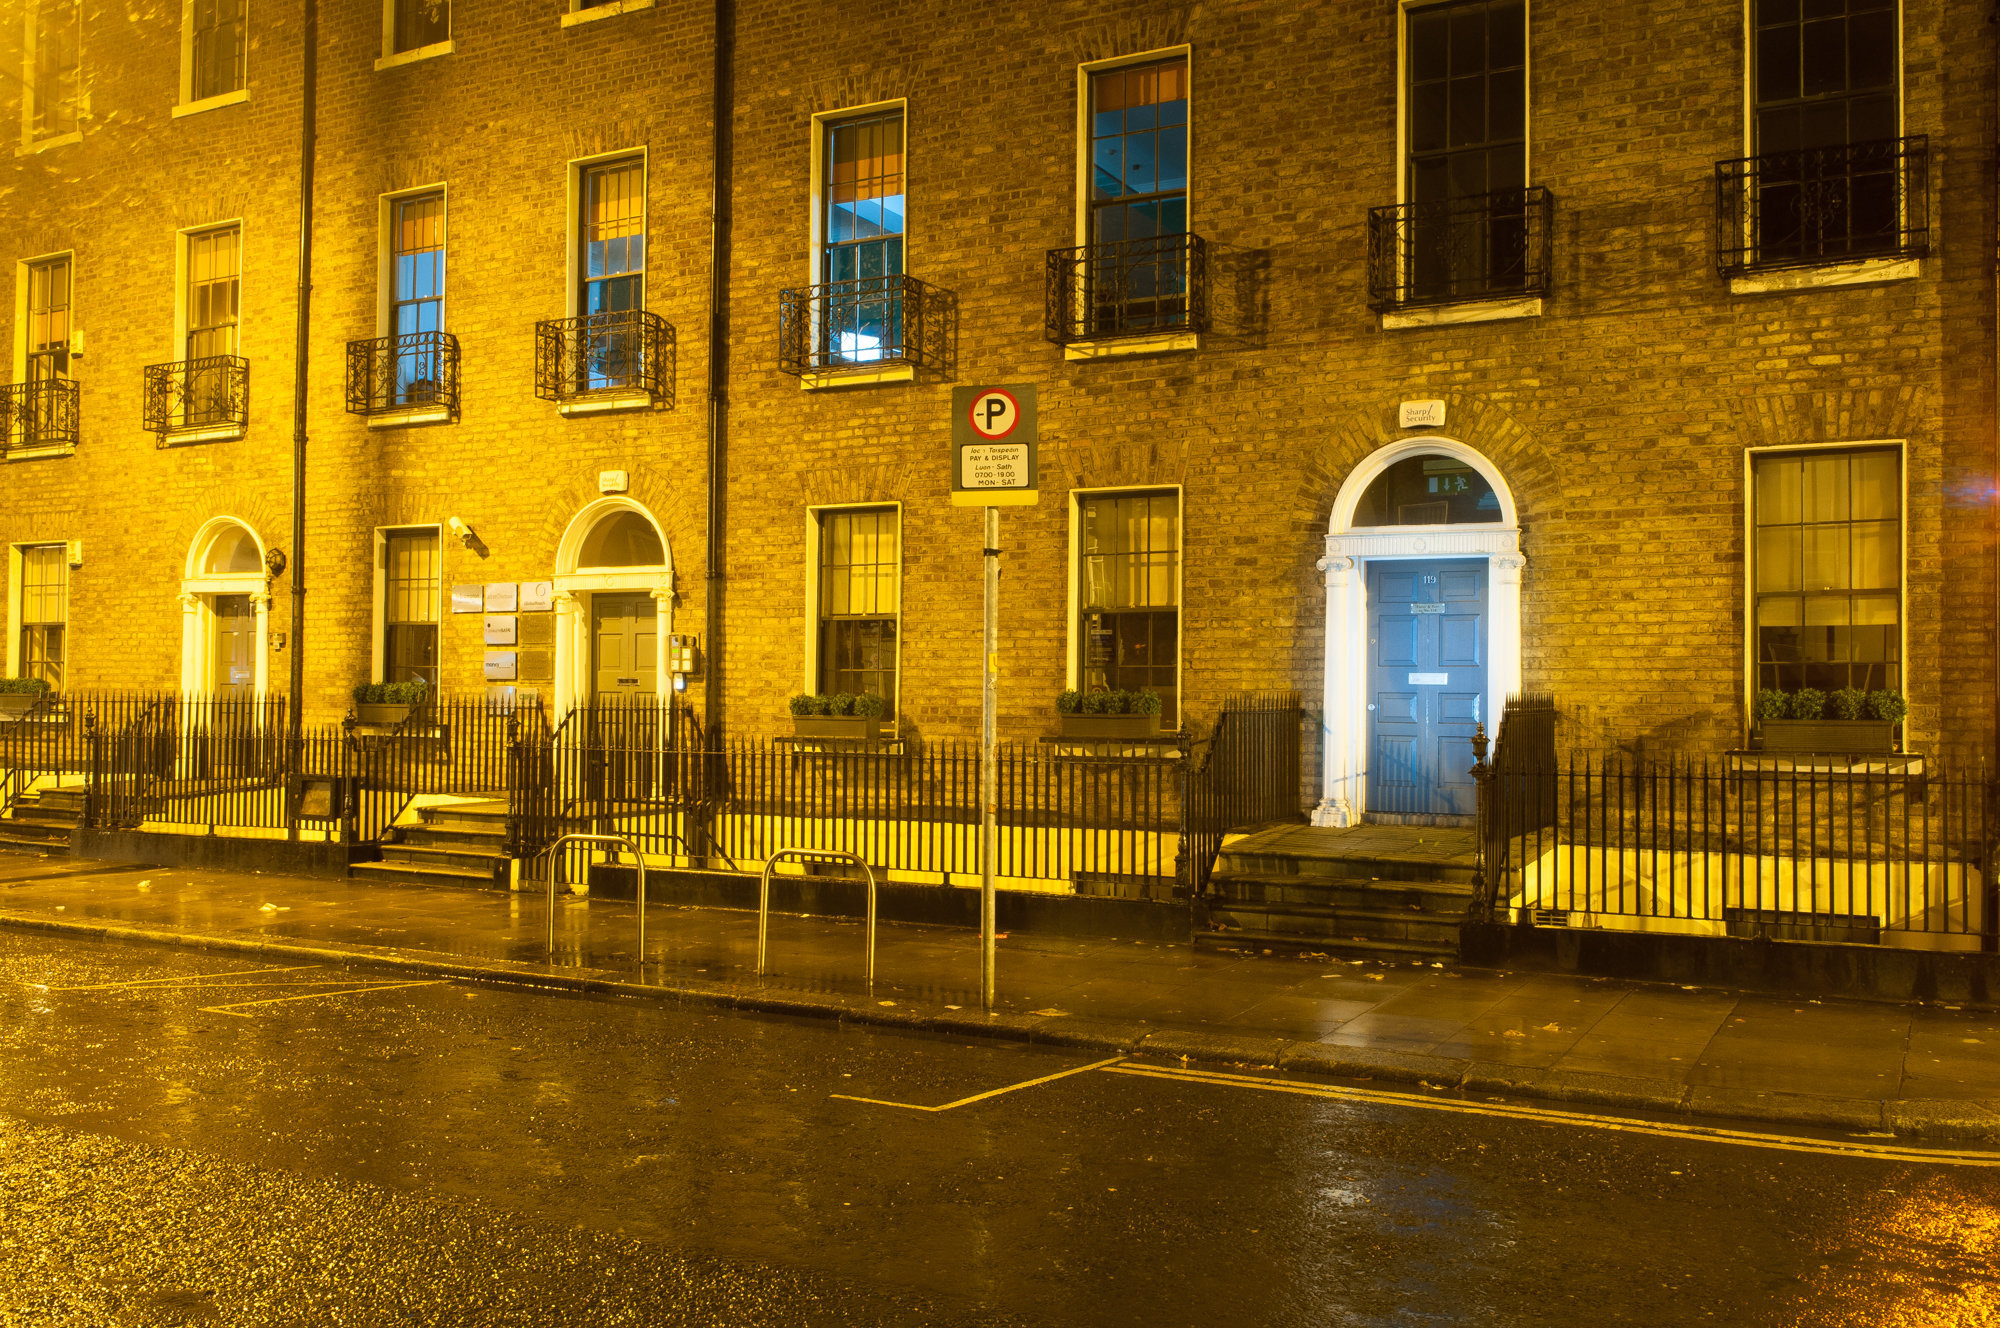 119 Lower Baggot Street: